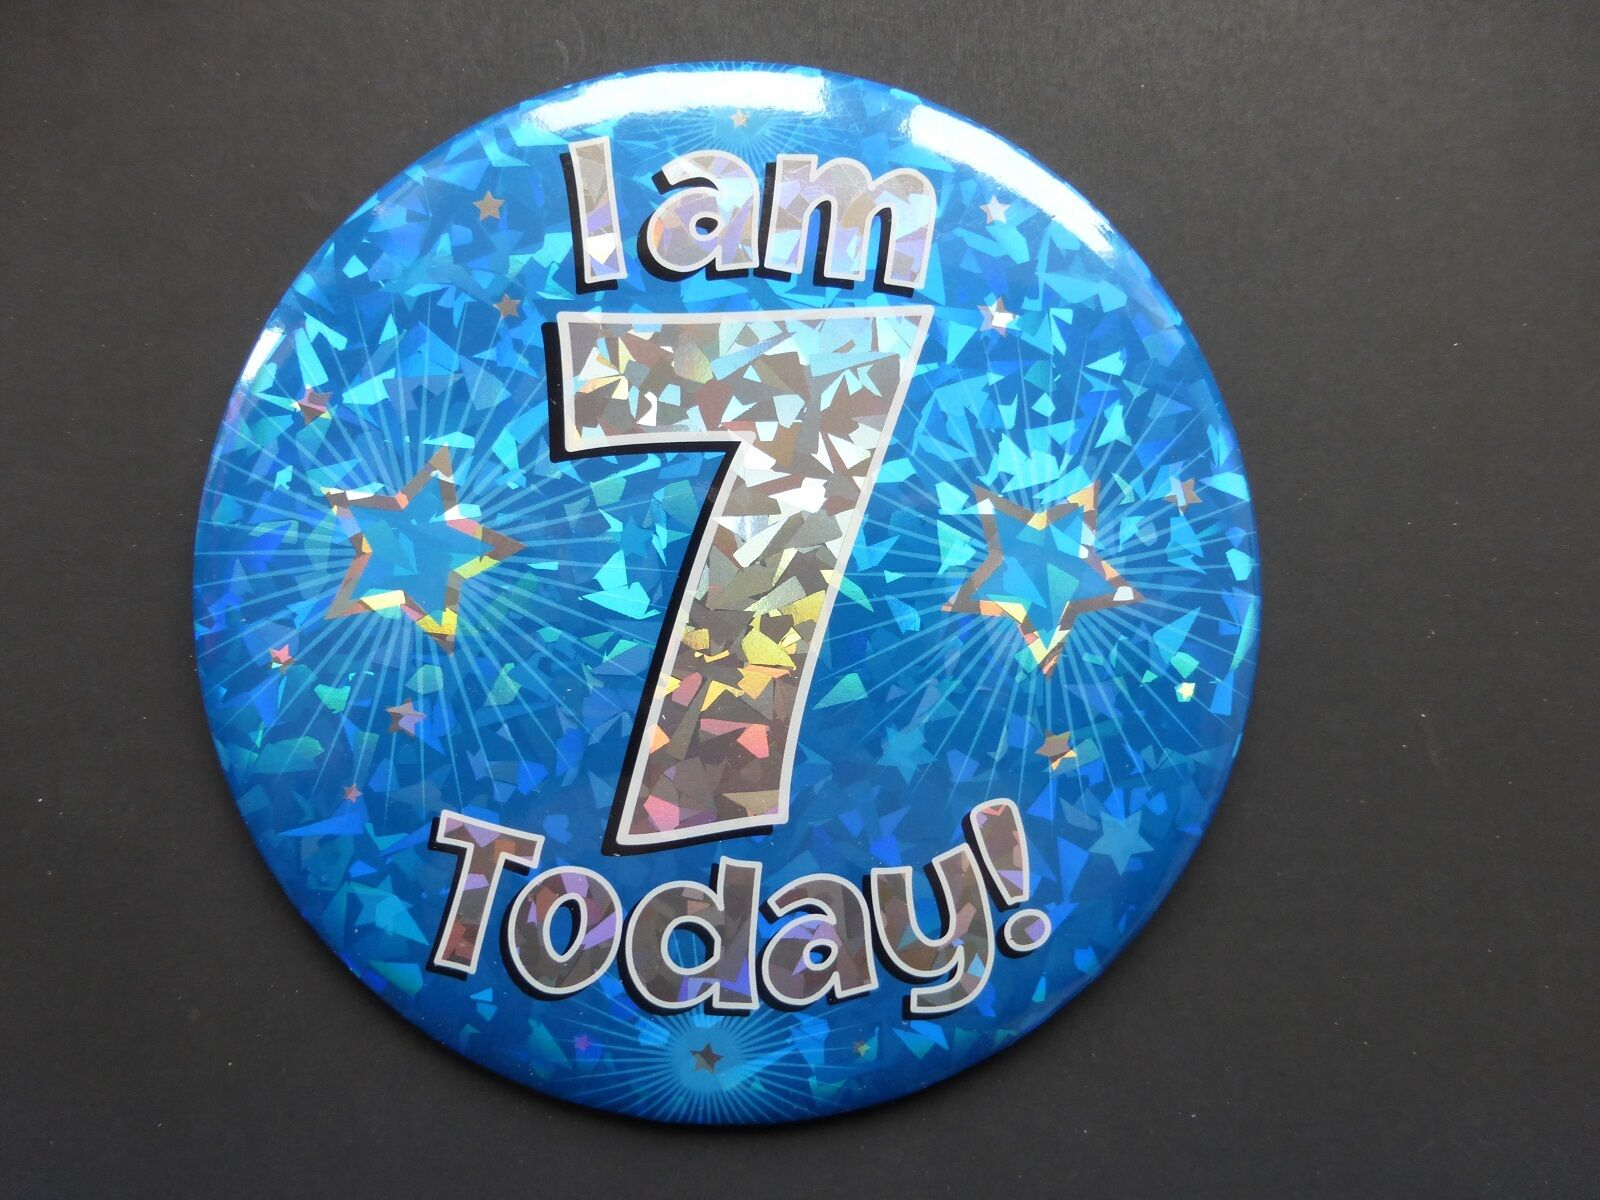 6/'/' Jumbo Badge I am 1 Today Blue Holographic Cracked Ice